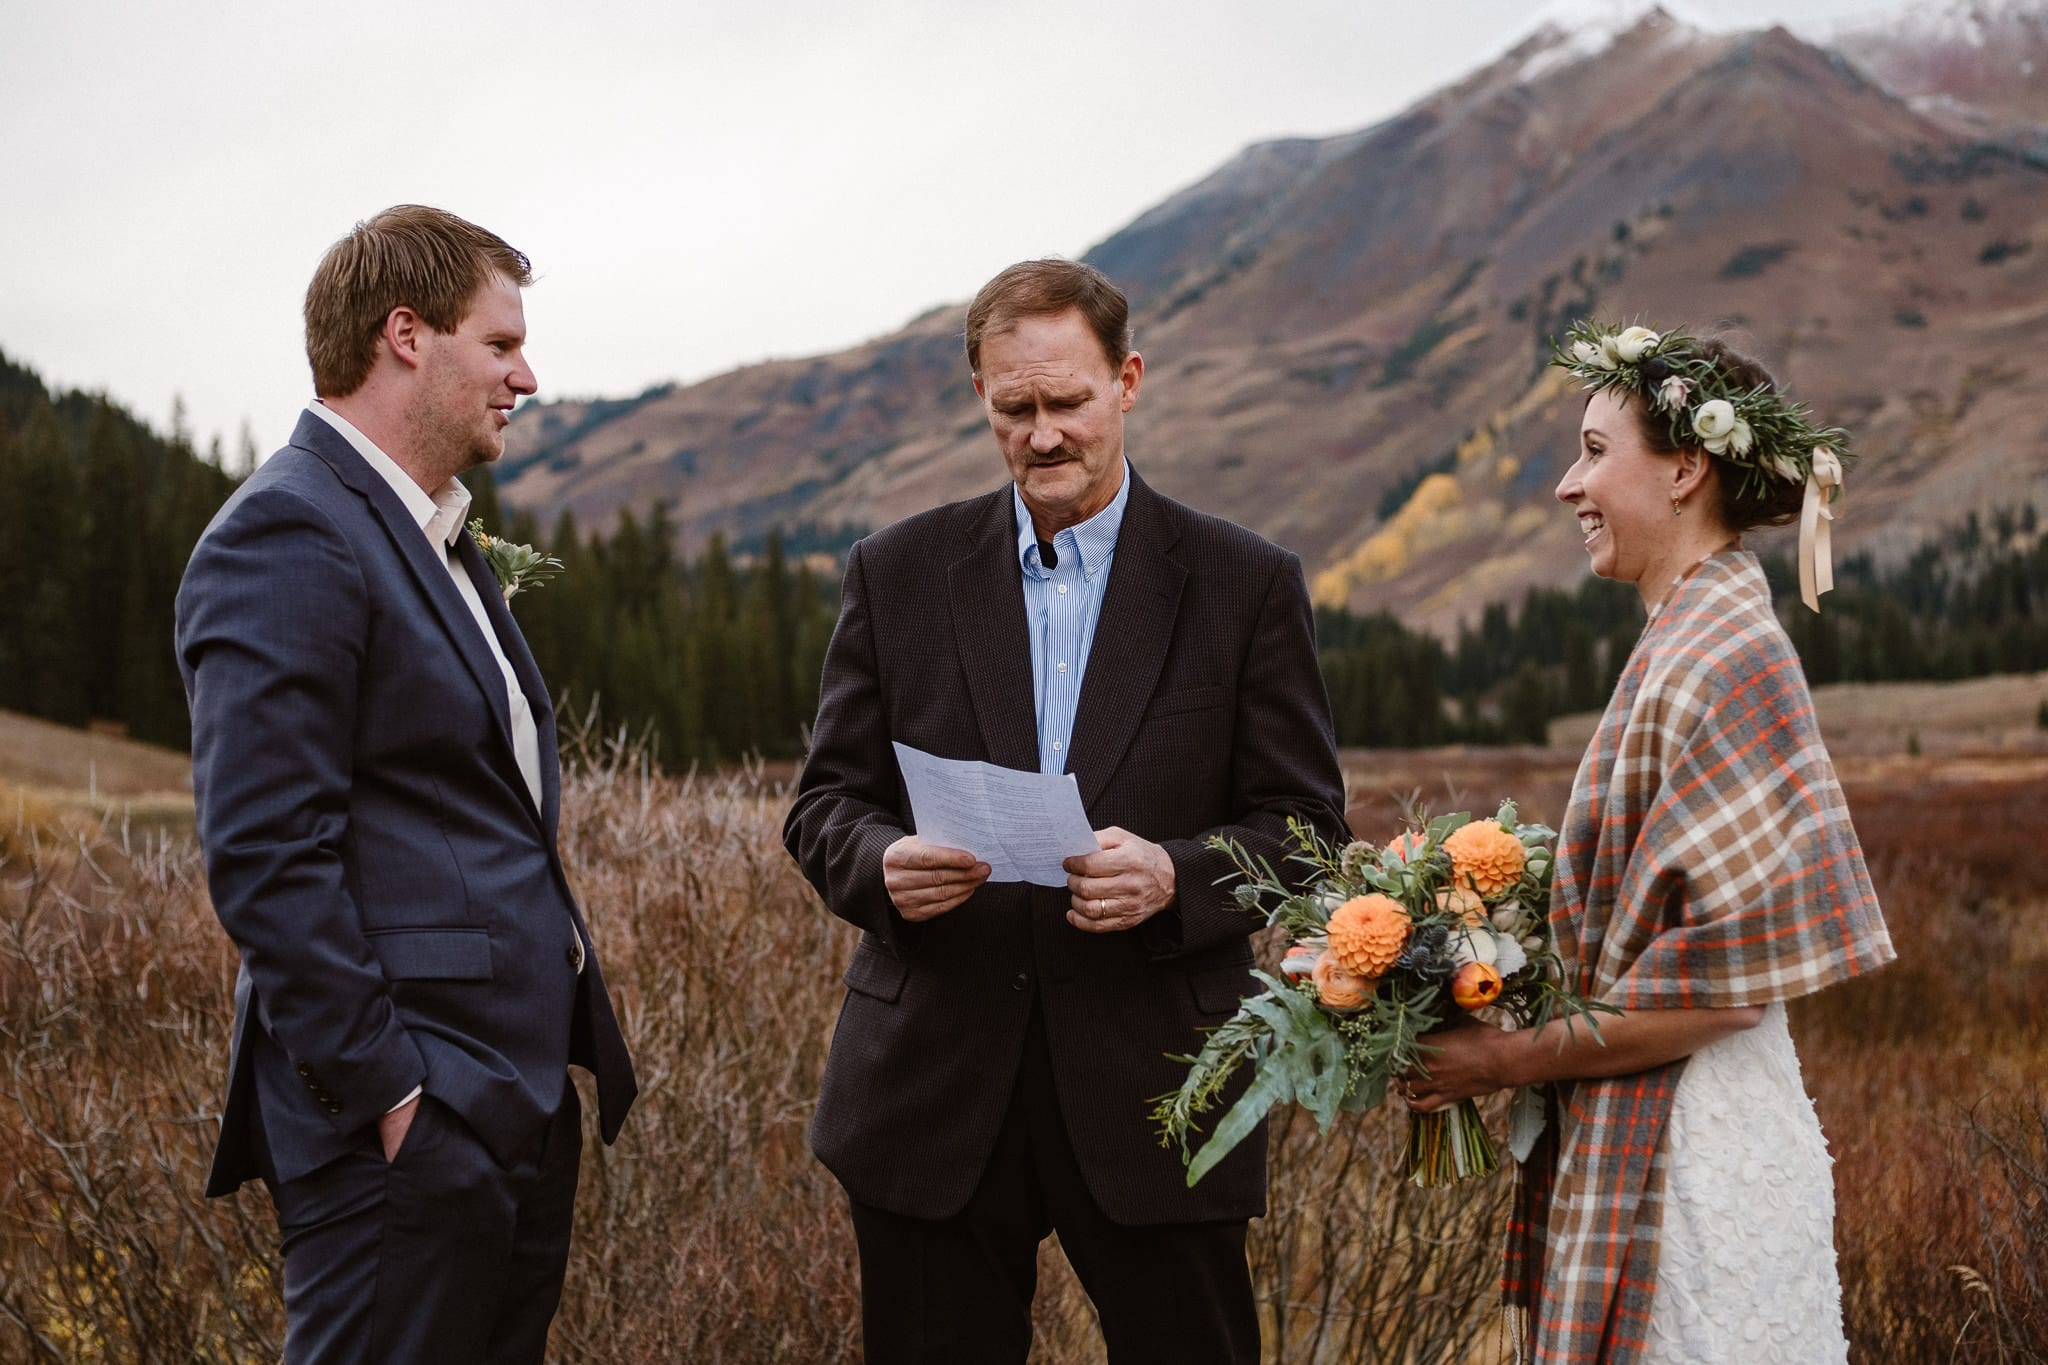 Crested Butte Wedding Photographer, Scarp Ridge Lodge intimate elopement, outdoor elopement in Colorado, Colorado mountain adventure wedding,